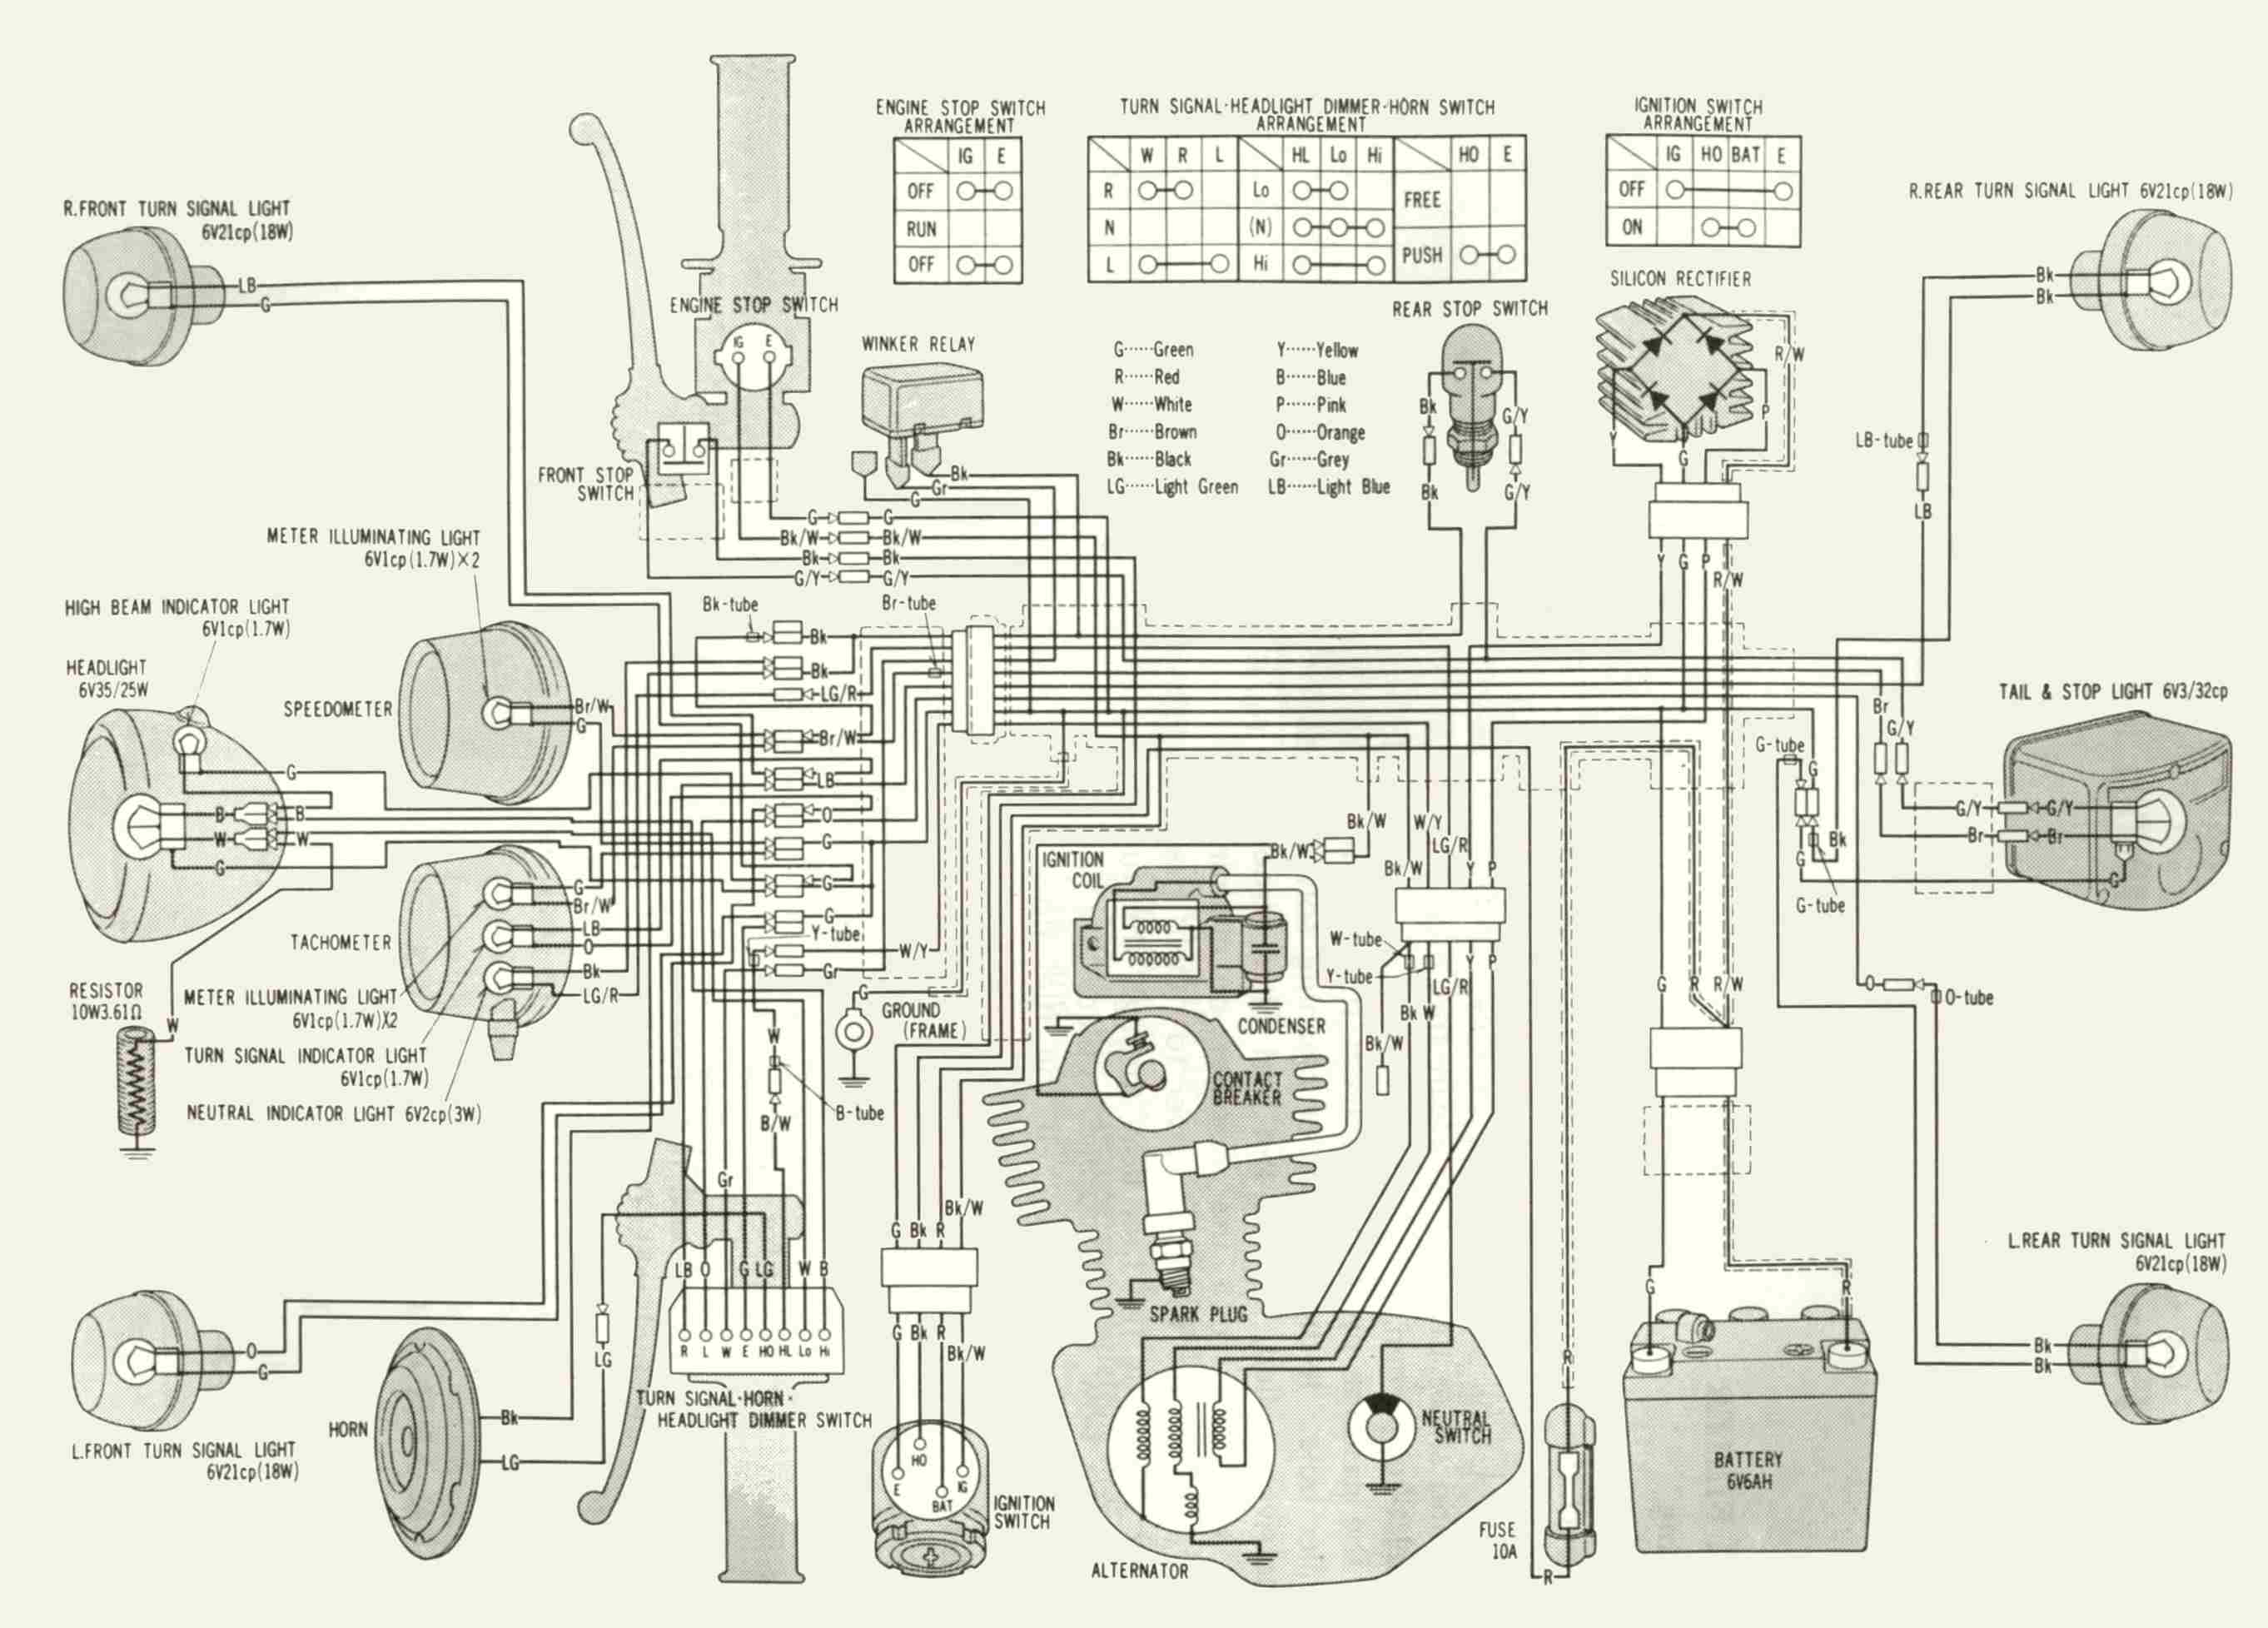 1973 honda ct90 wiring diagram - wiring diagram 1973 honda ct90 wiring harness #4